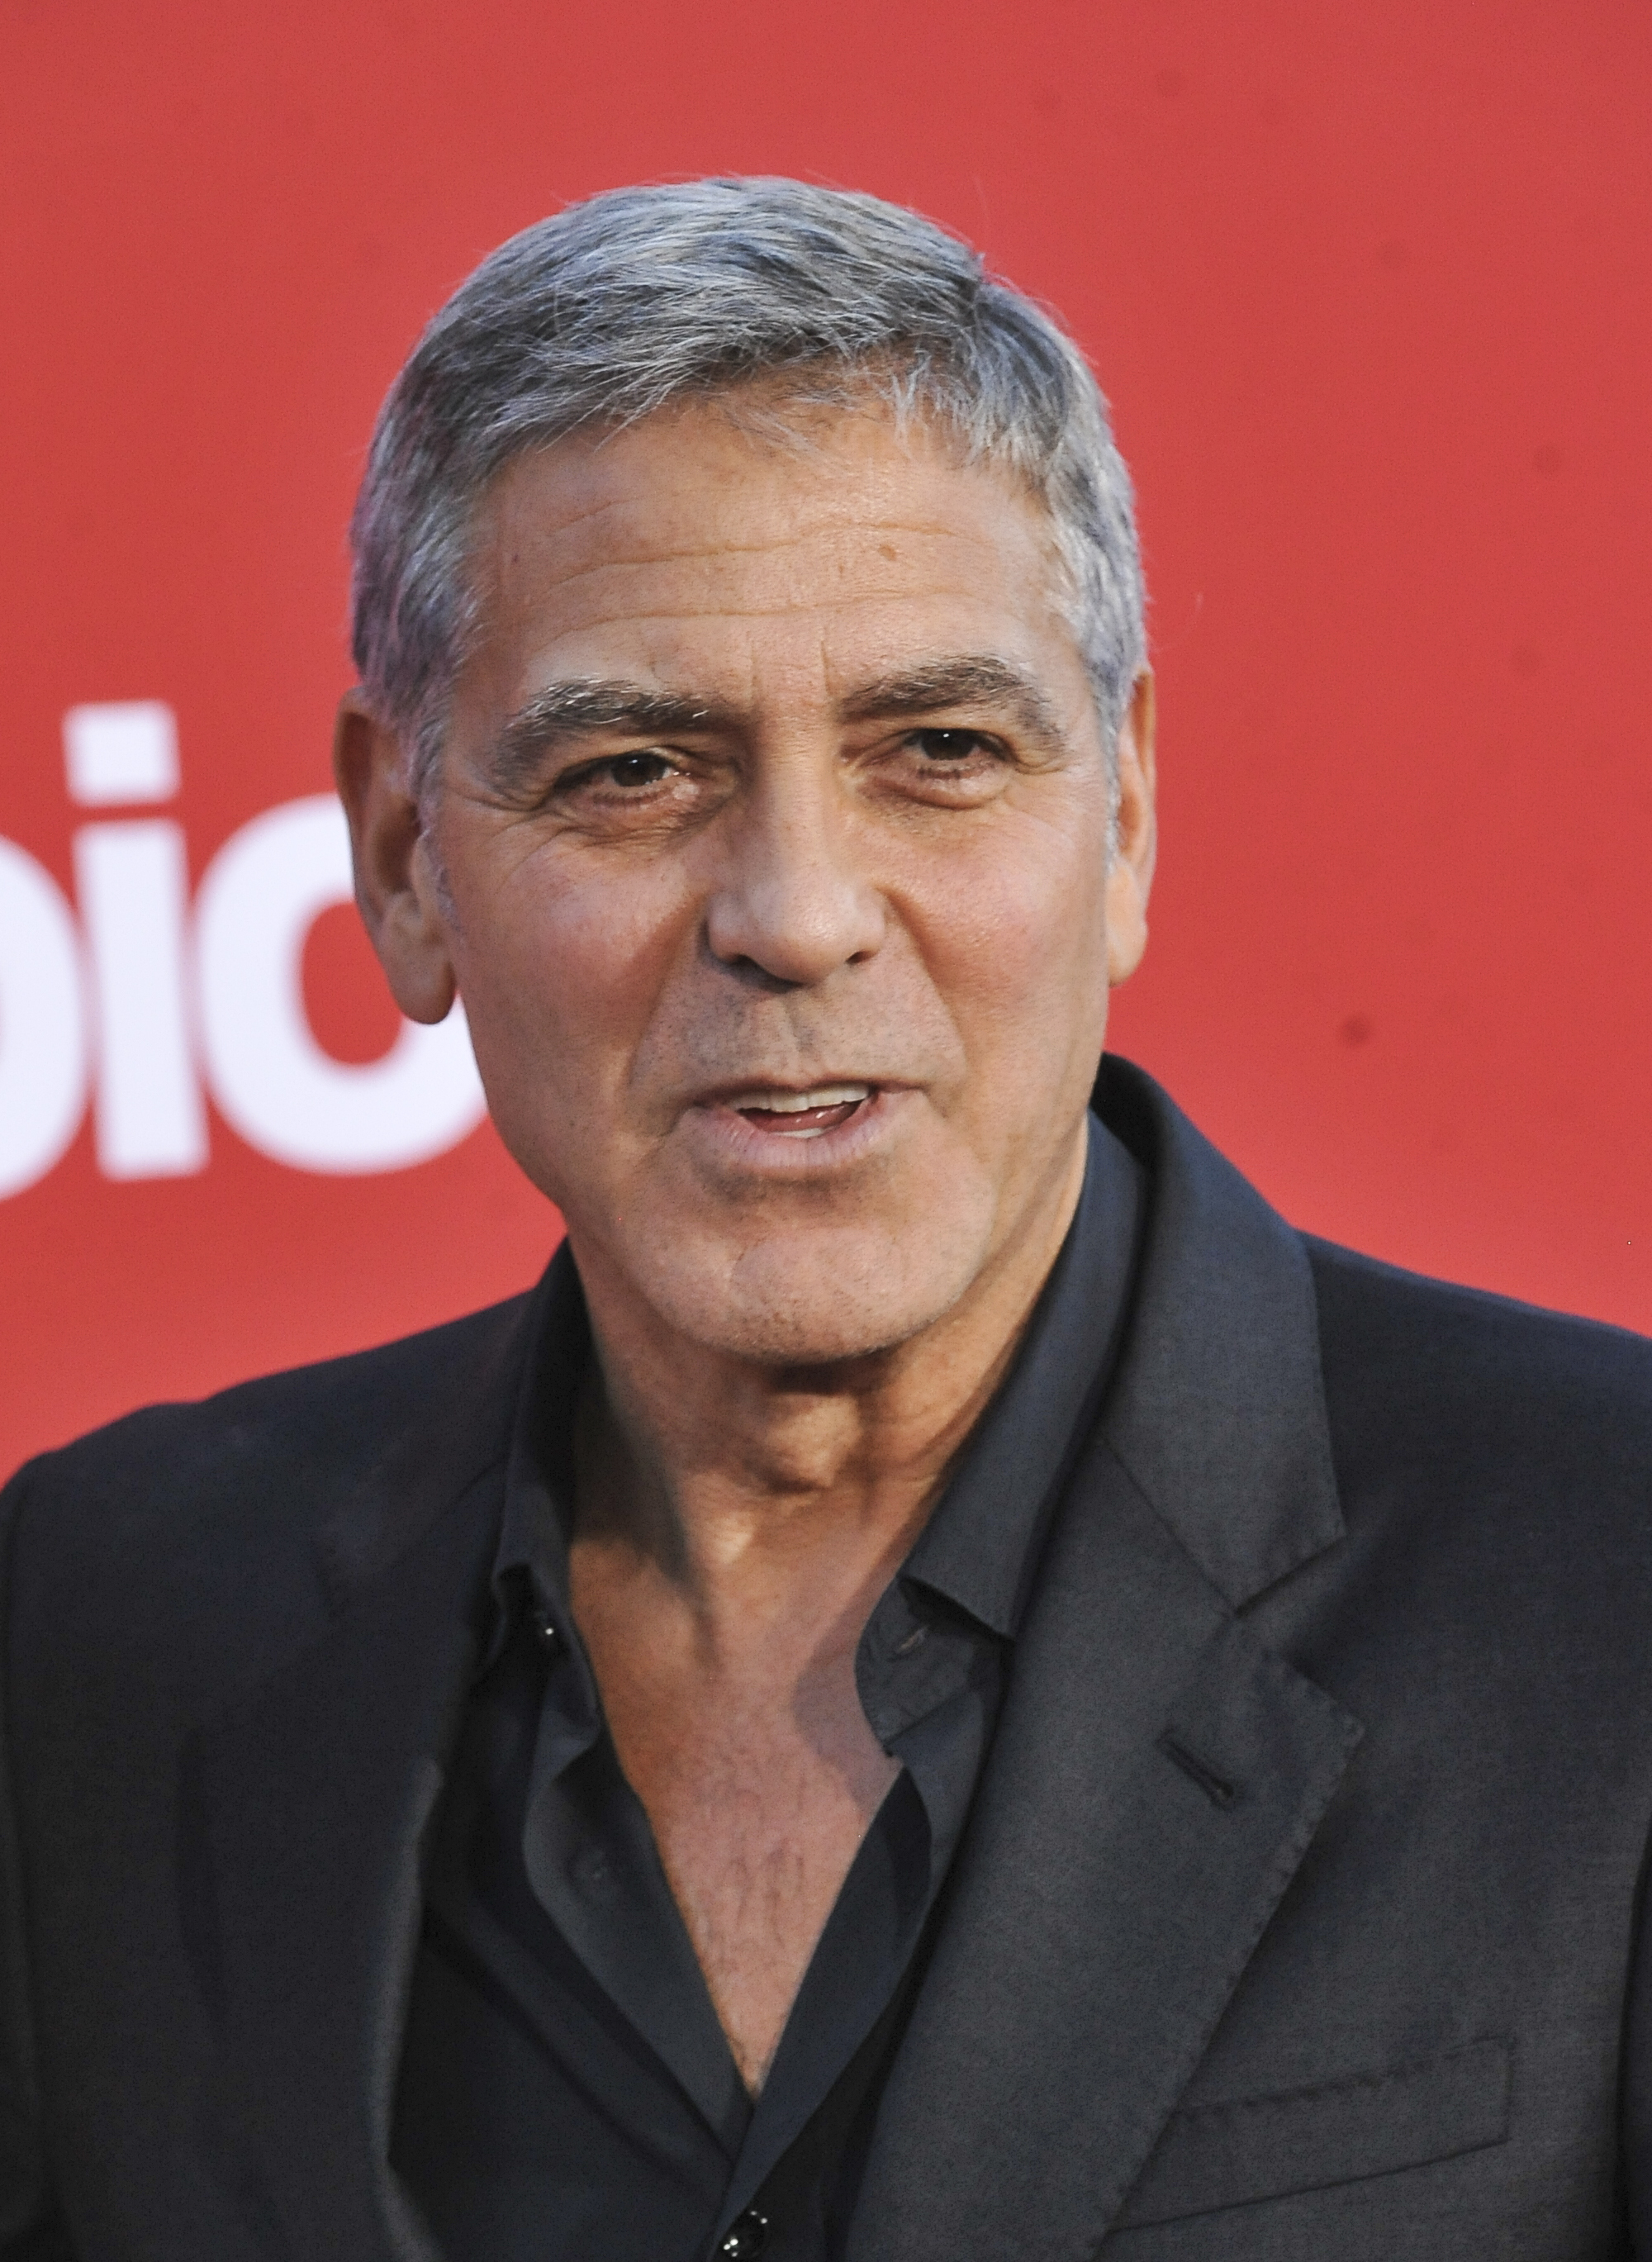 """George Clooney attends the premiere of """"Suburbicon"""" in Los Angeles on Oct. 23, 2017."""